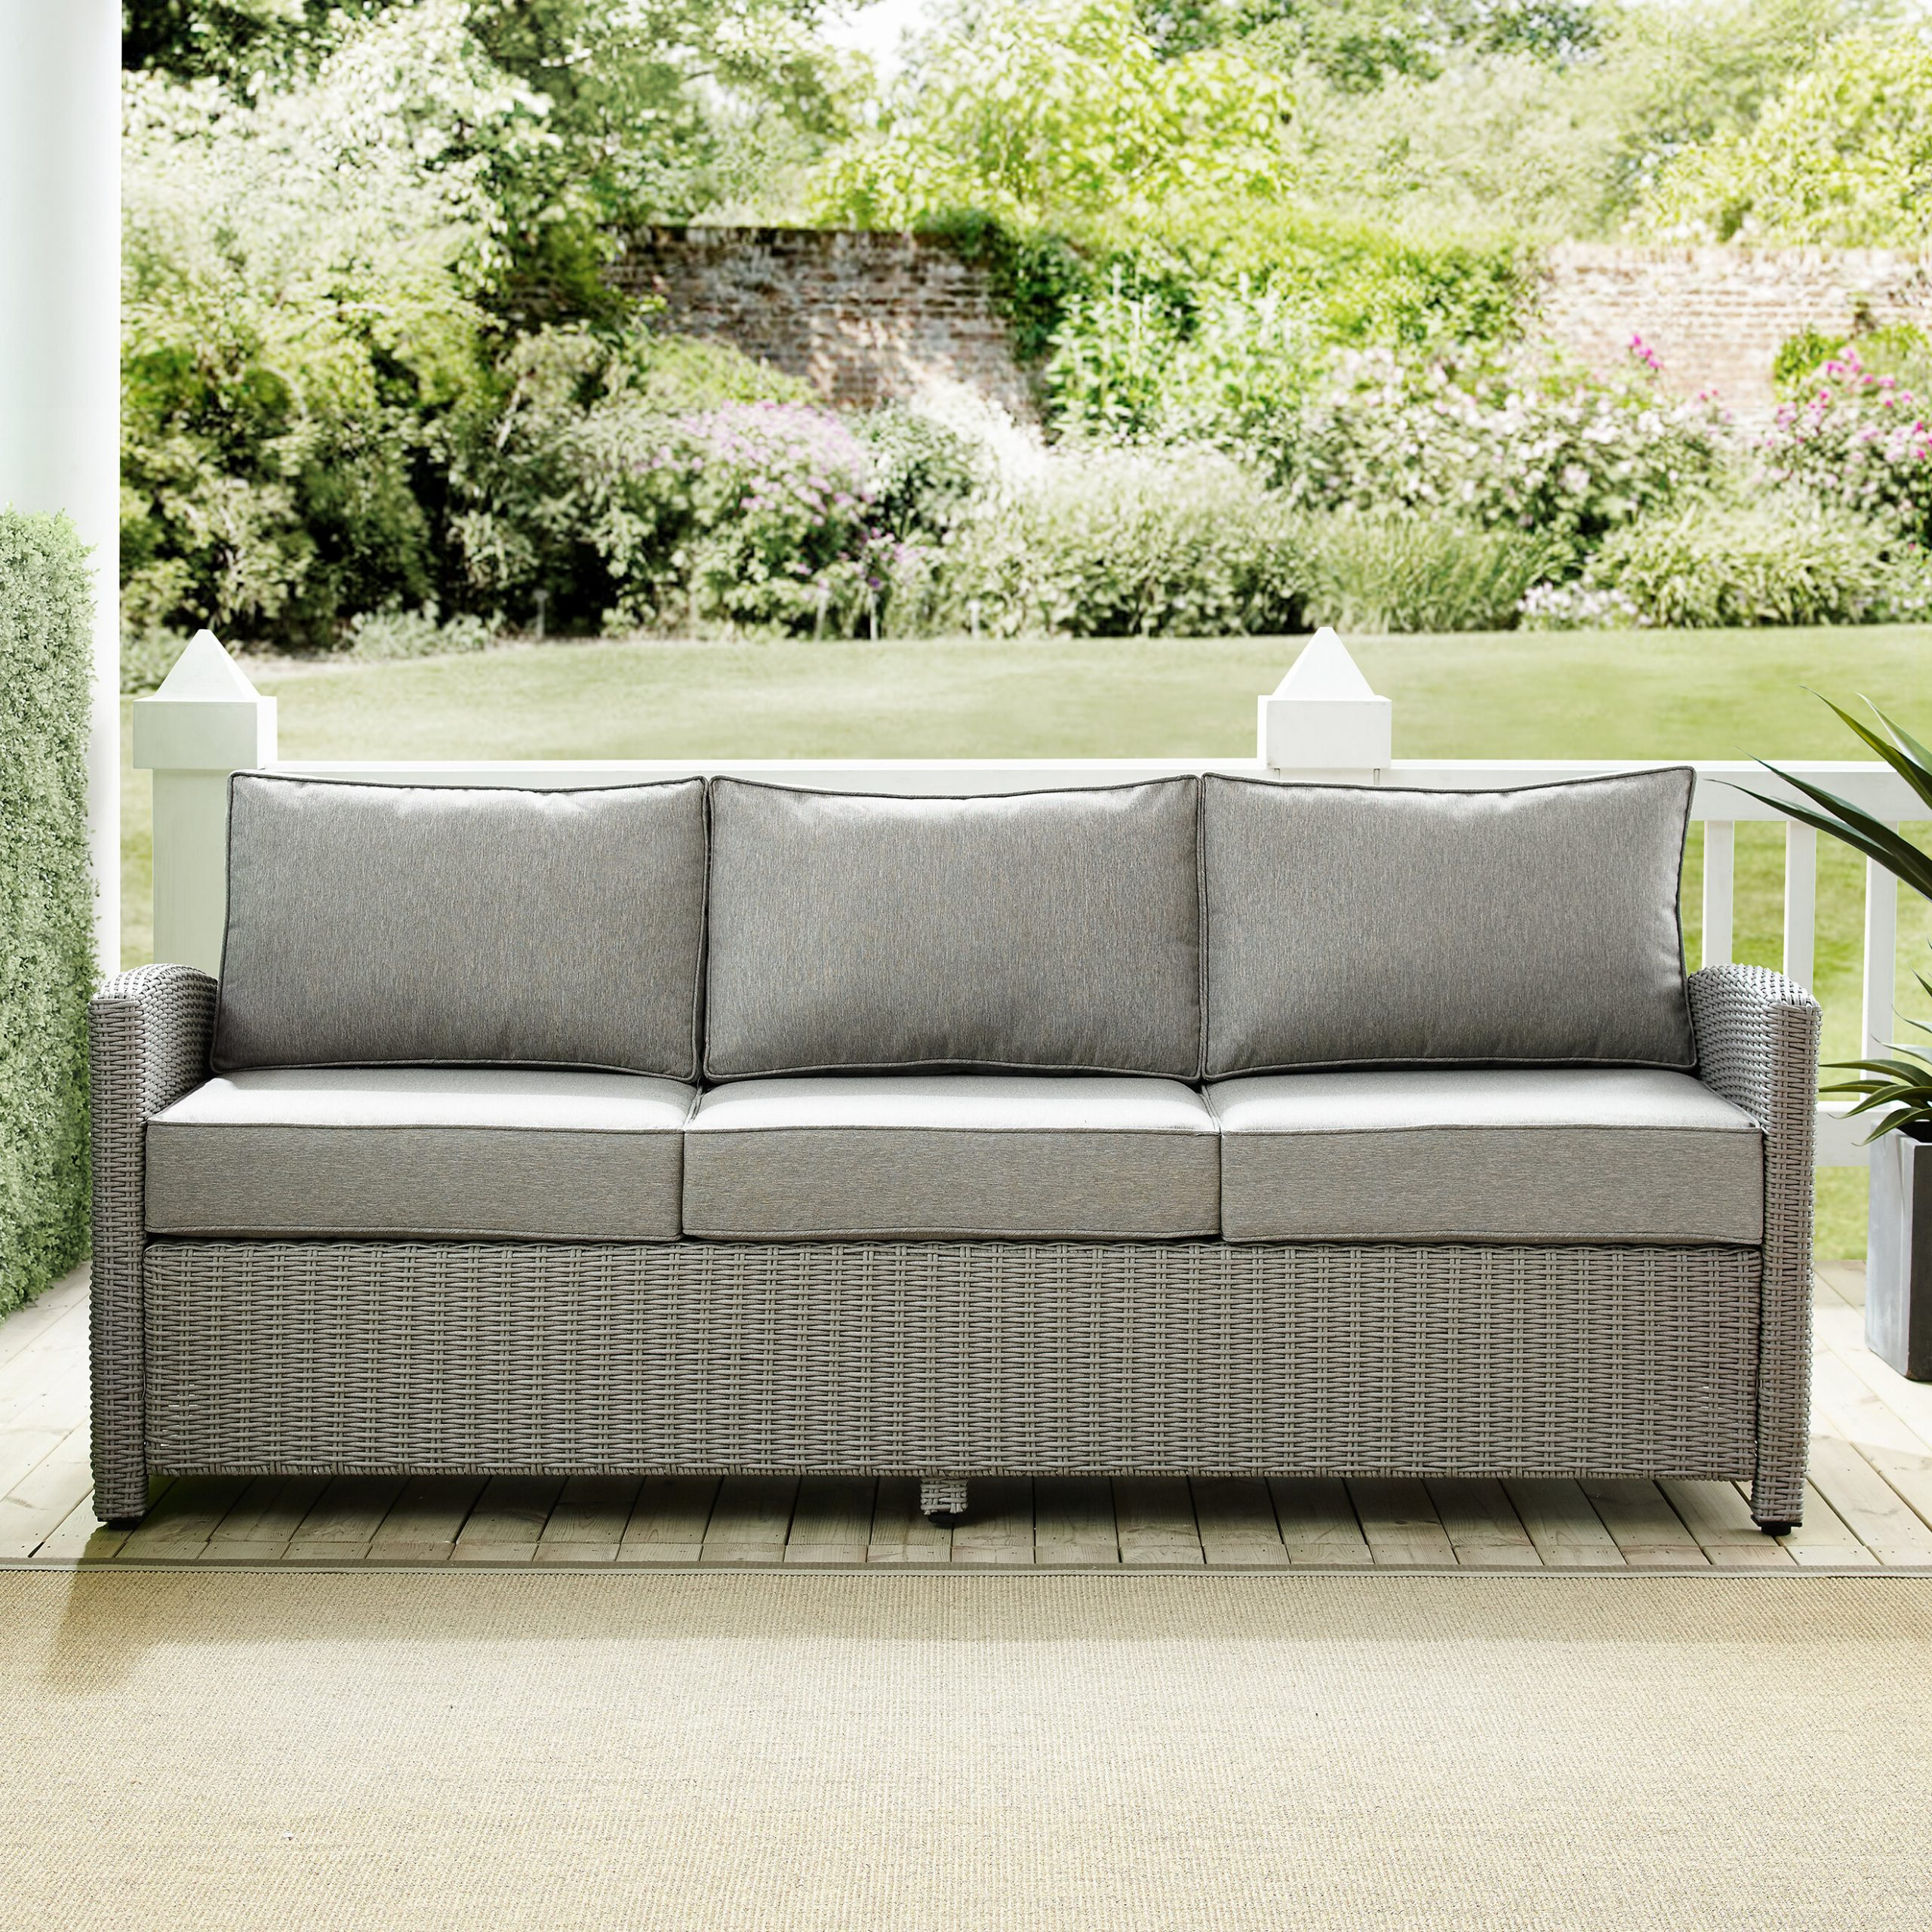 Well Known Lawson Patio Sofa With Cushions With Lawson Patio Sofas With Cushions (View 7 of 25)